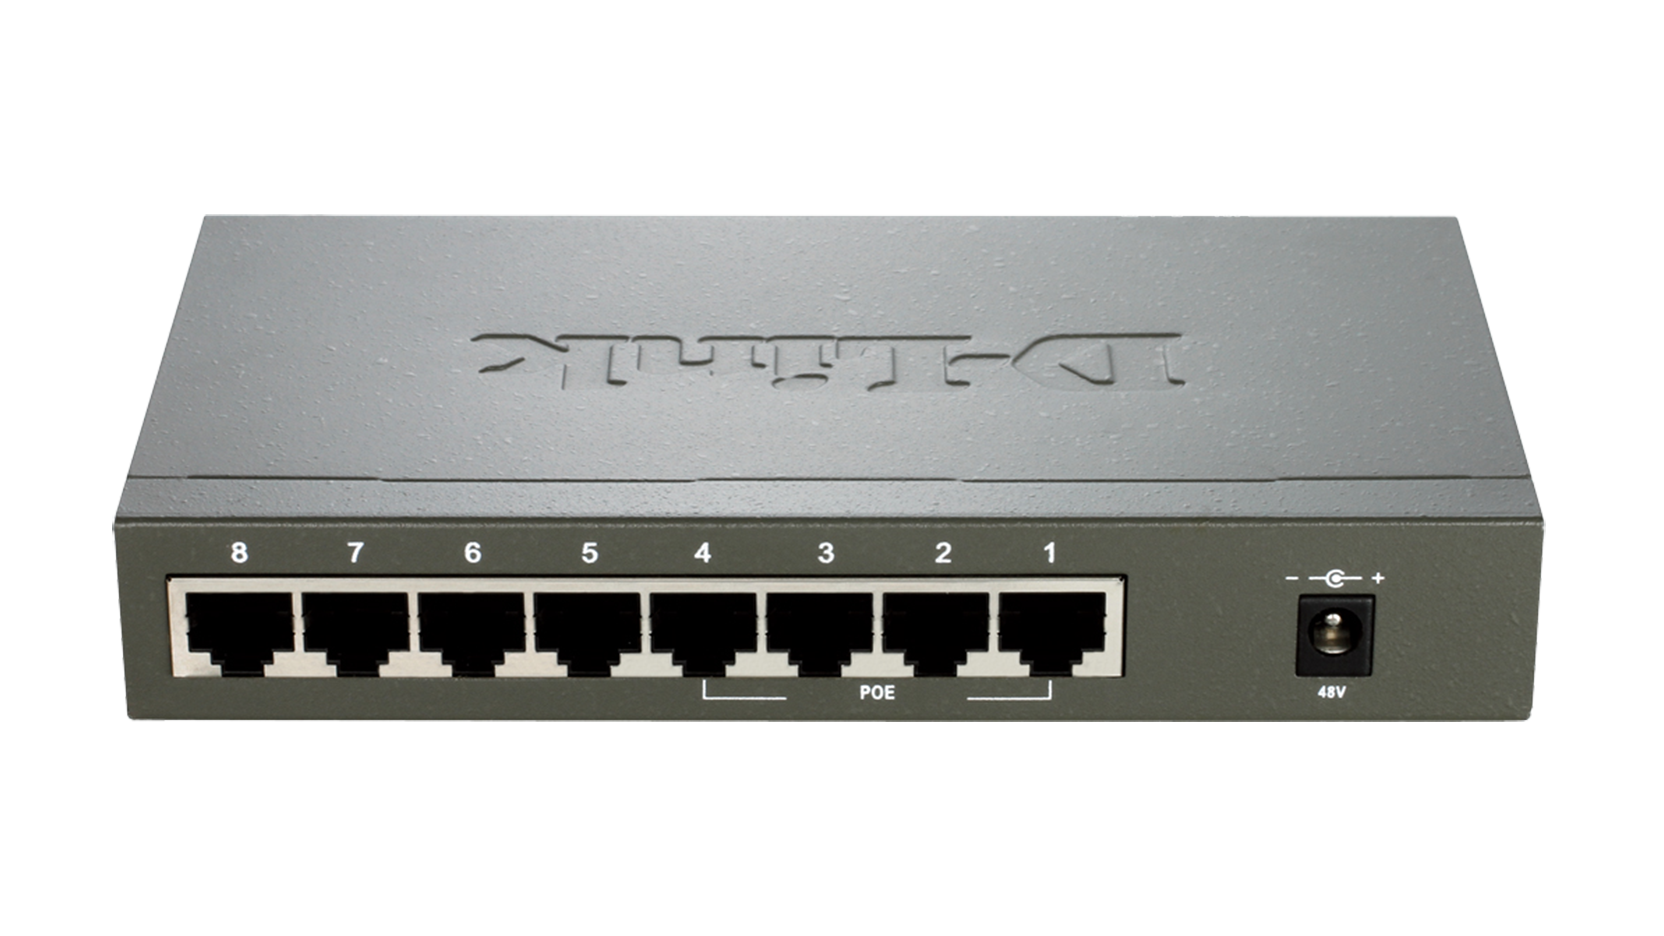 Des 1008pa 8 Port Fast Ethernet Poe Desktop Switch D Link Uk